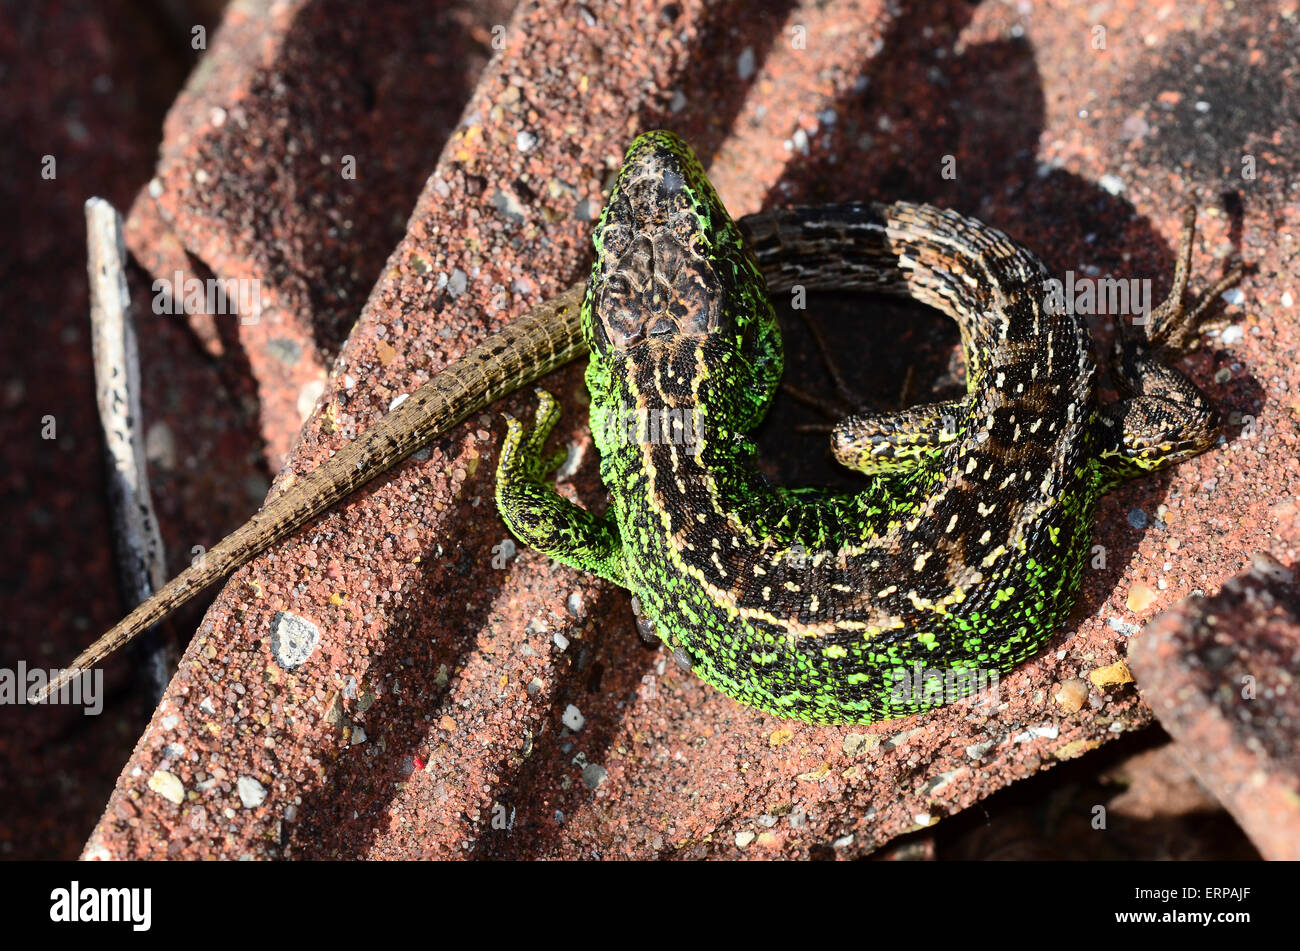 A male sand lizard curled around itself Dorset UK - Stock Image